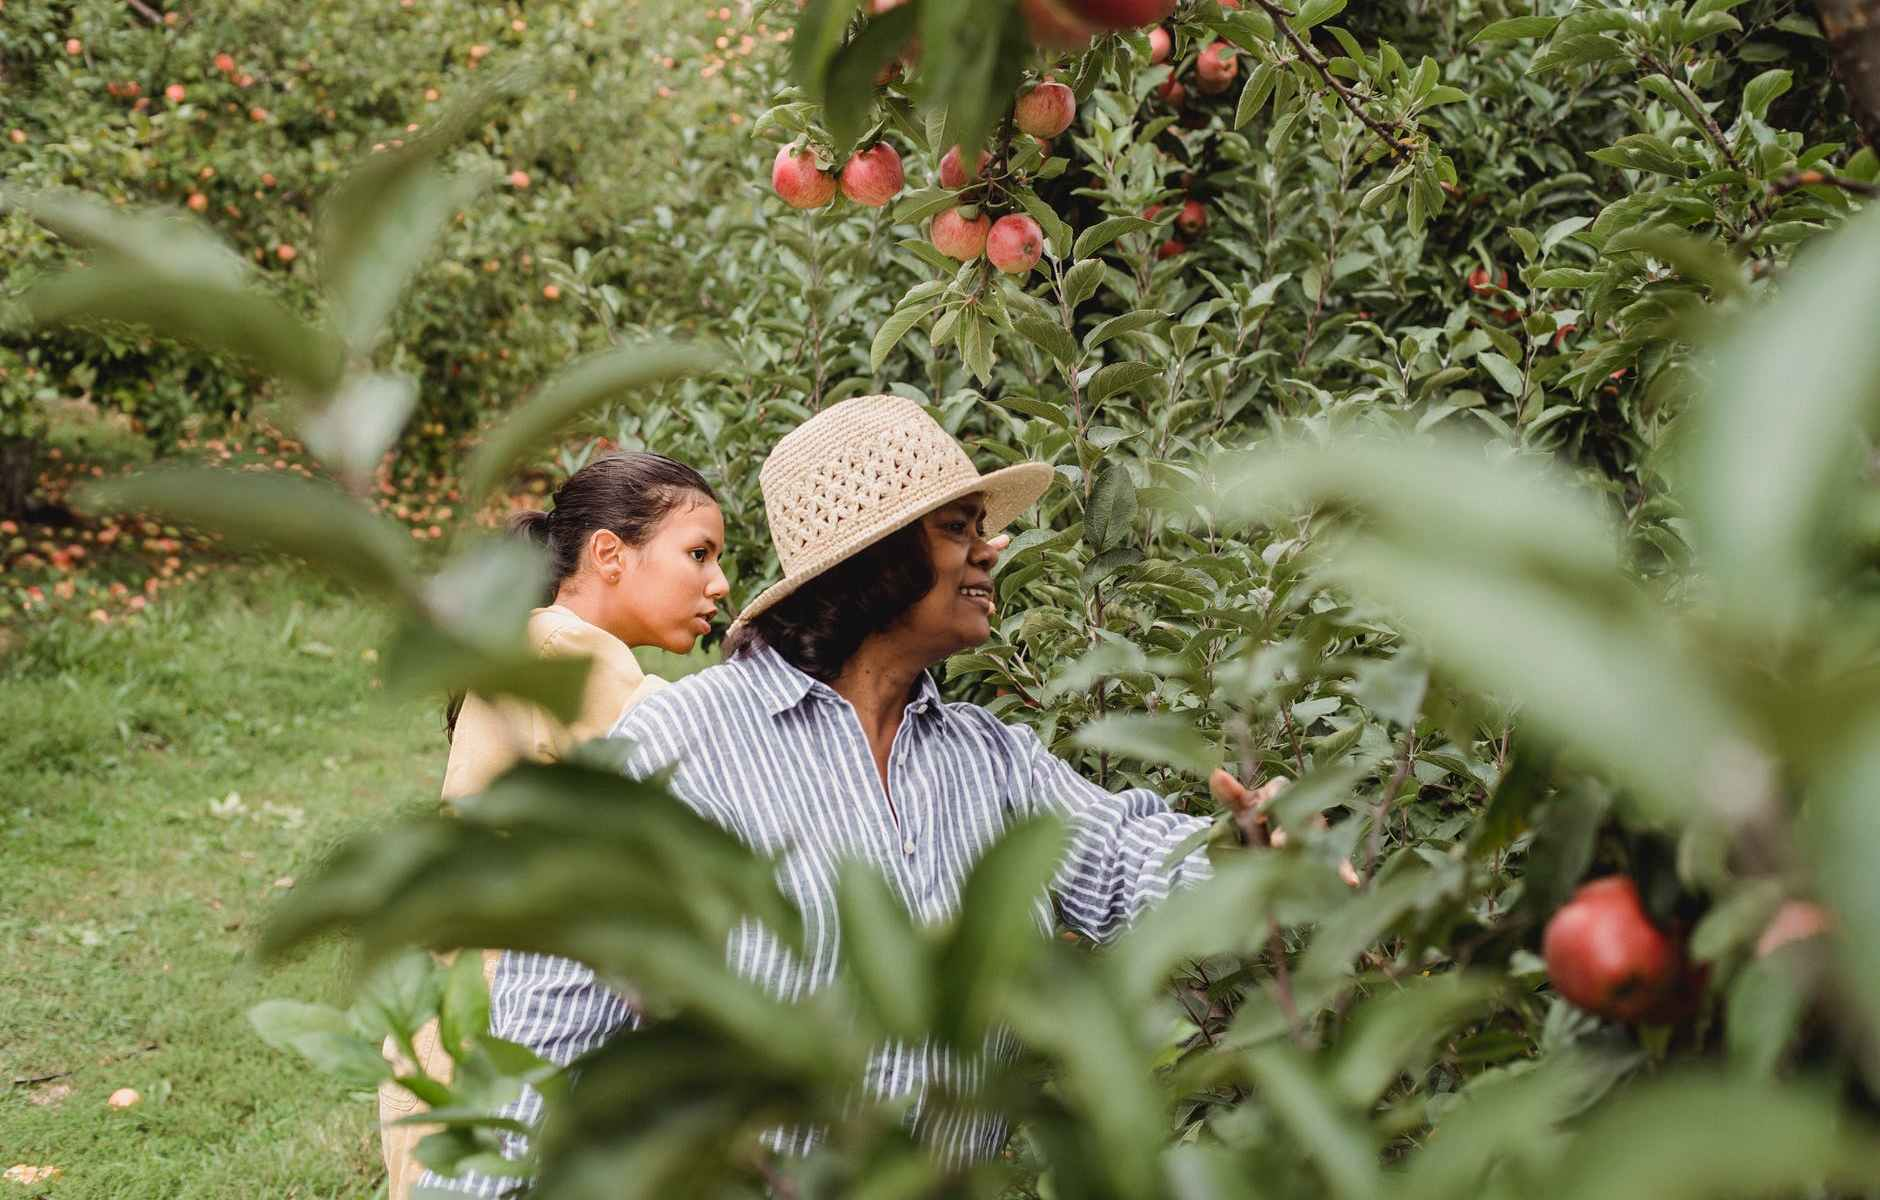 ethnic mother harvesting fruits in green orchard